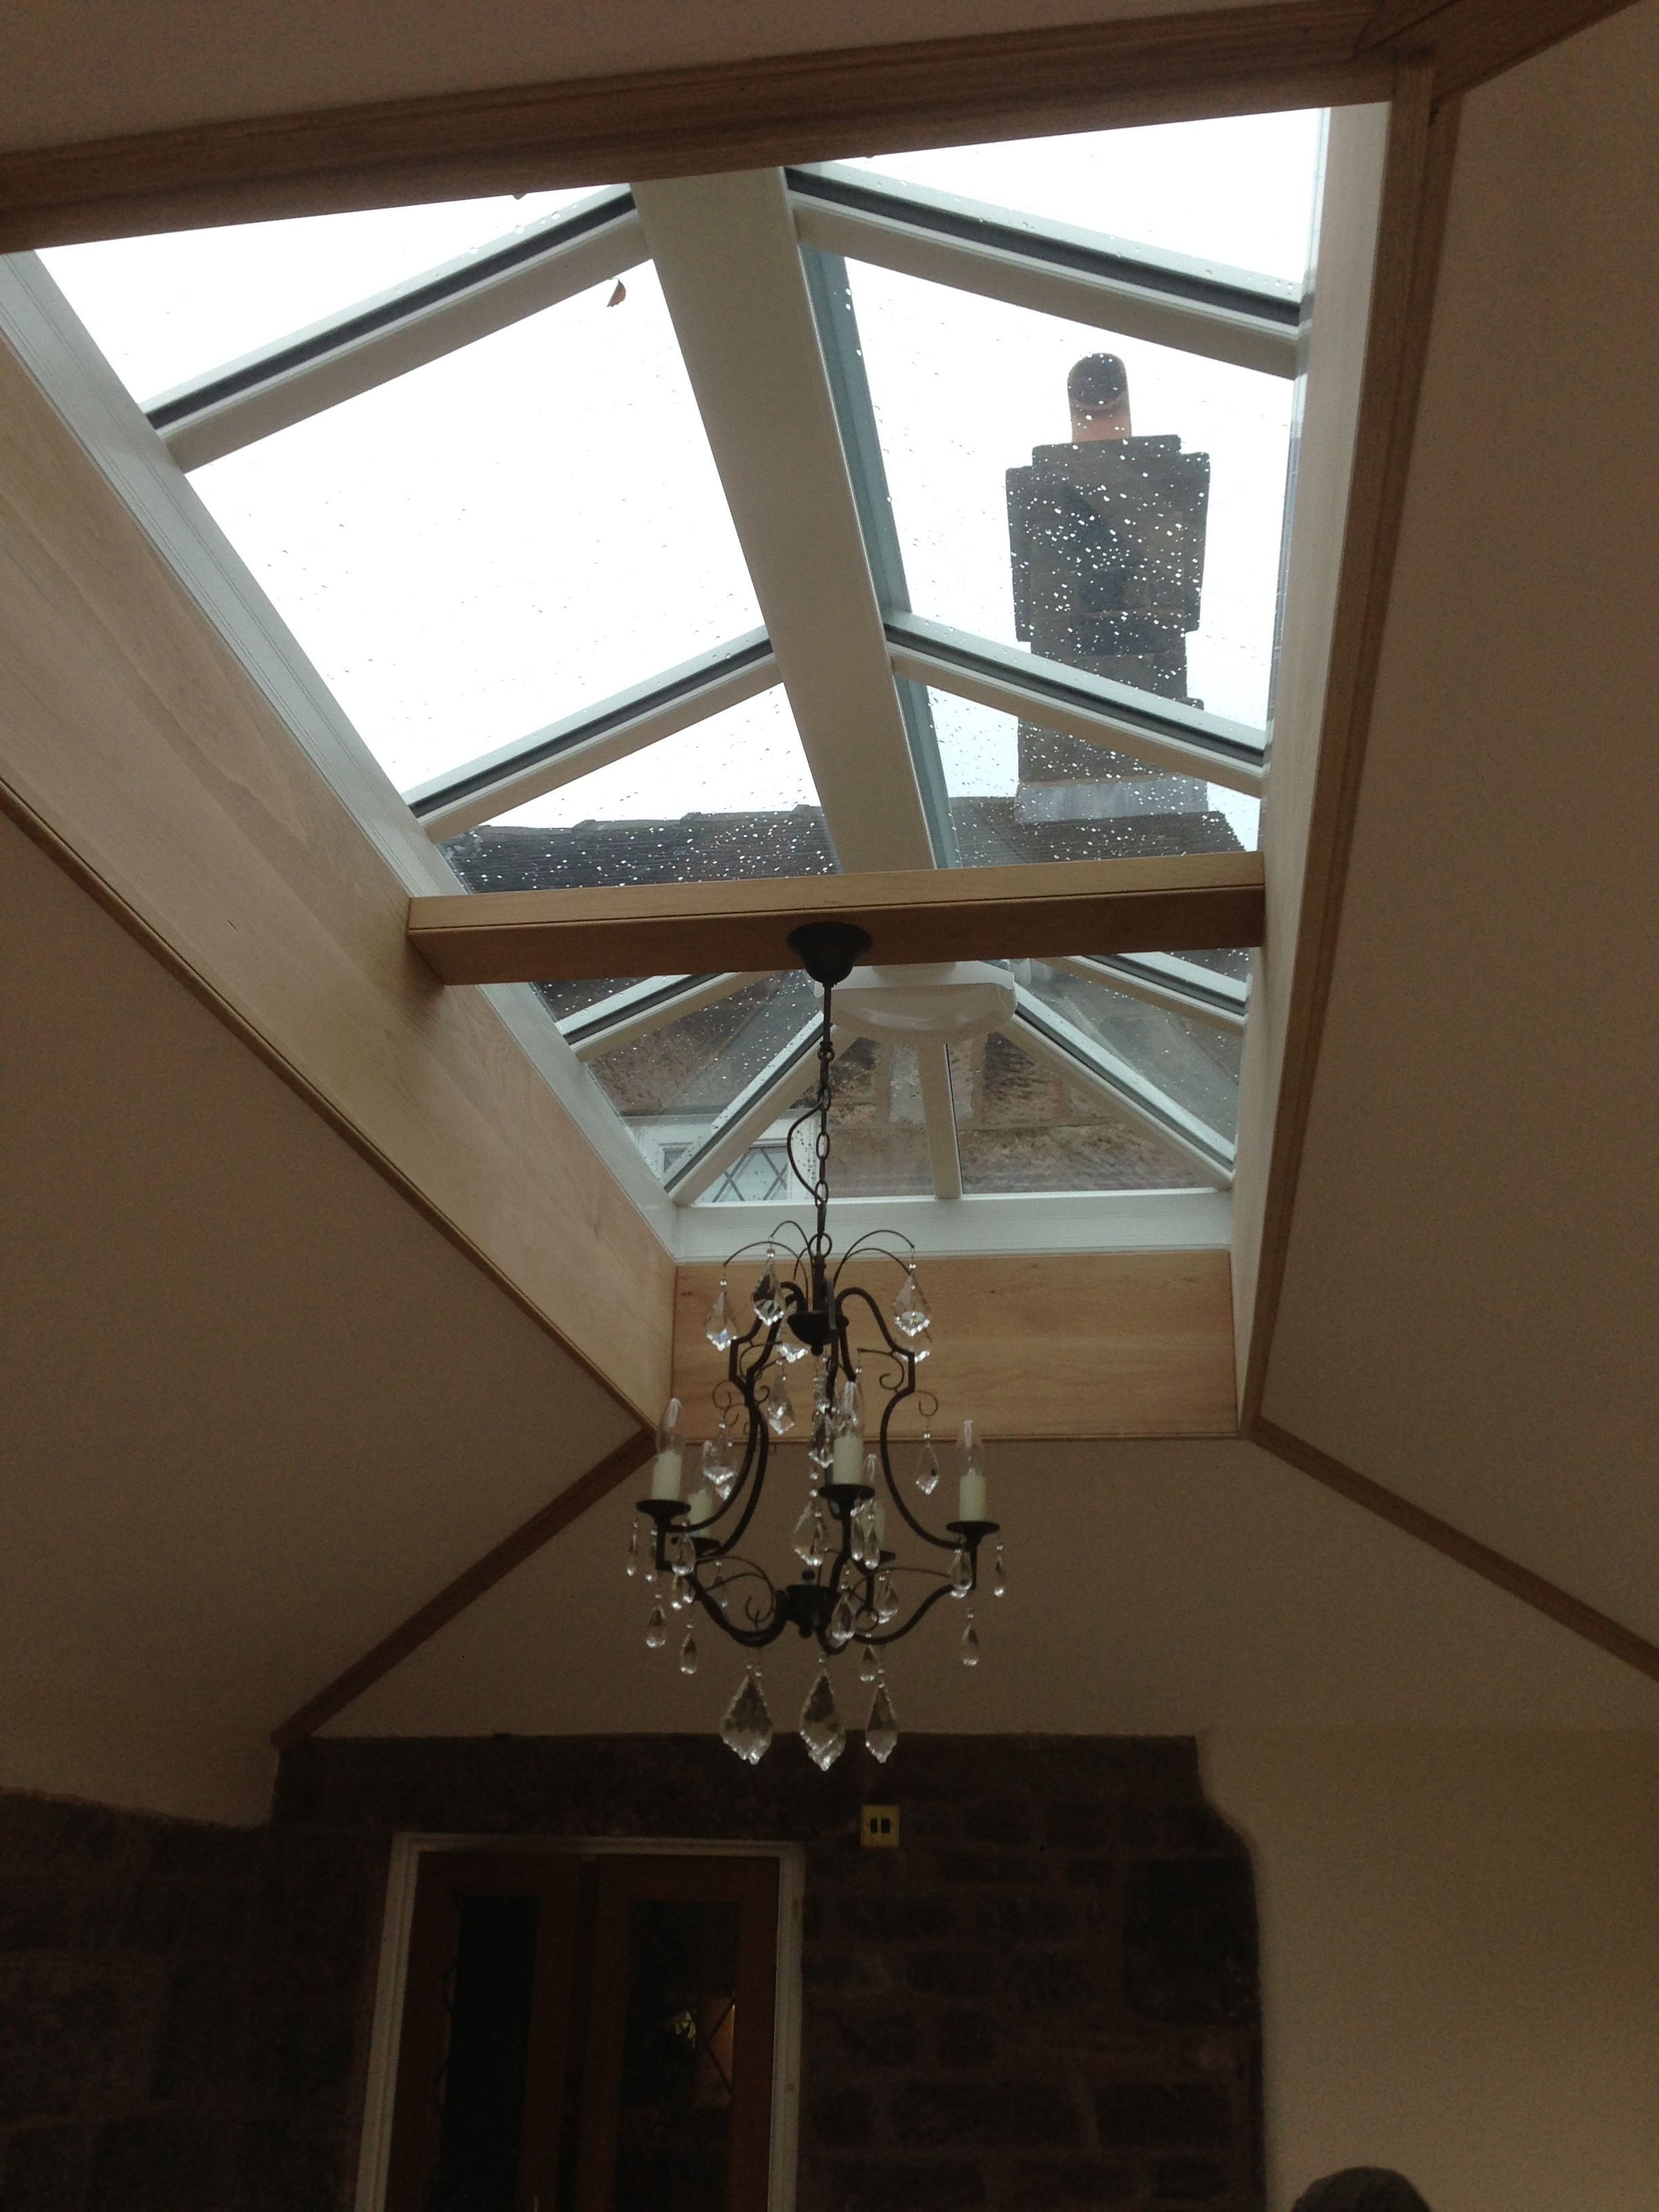 Oak orangery in hurst bank, Biddulph